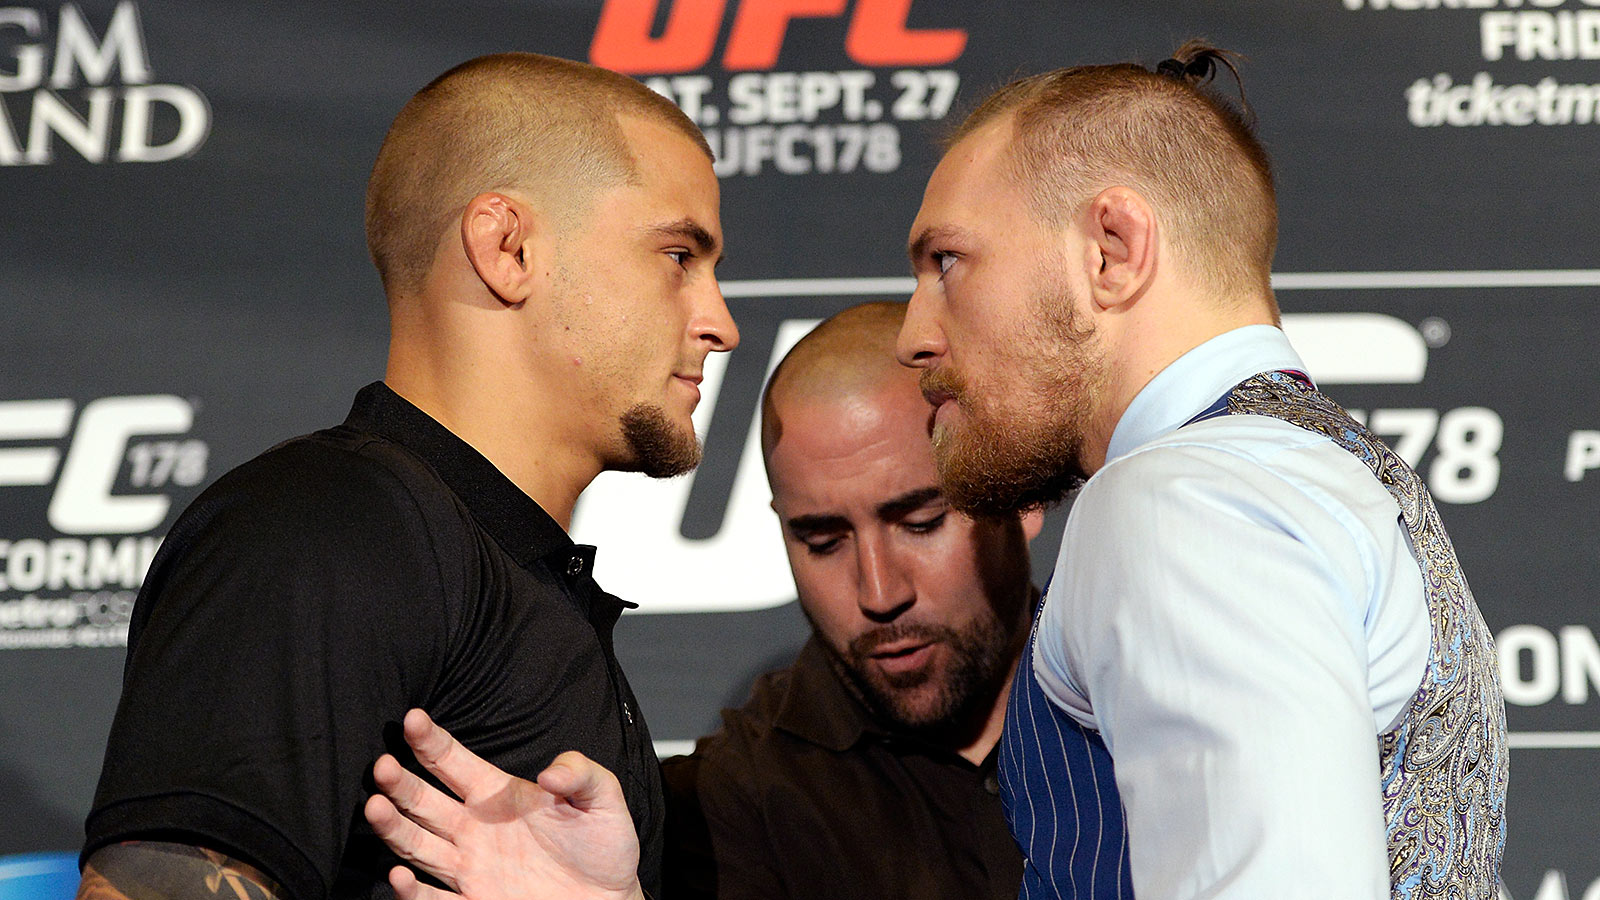 McGregor vs Poirier